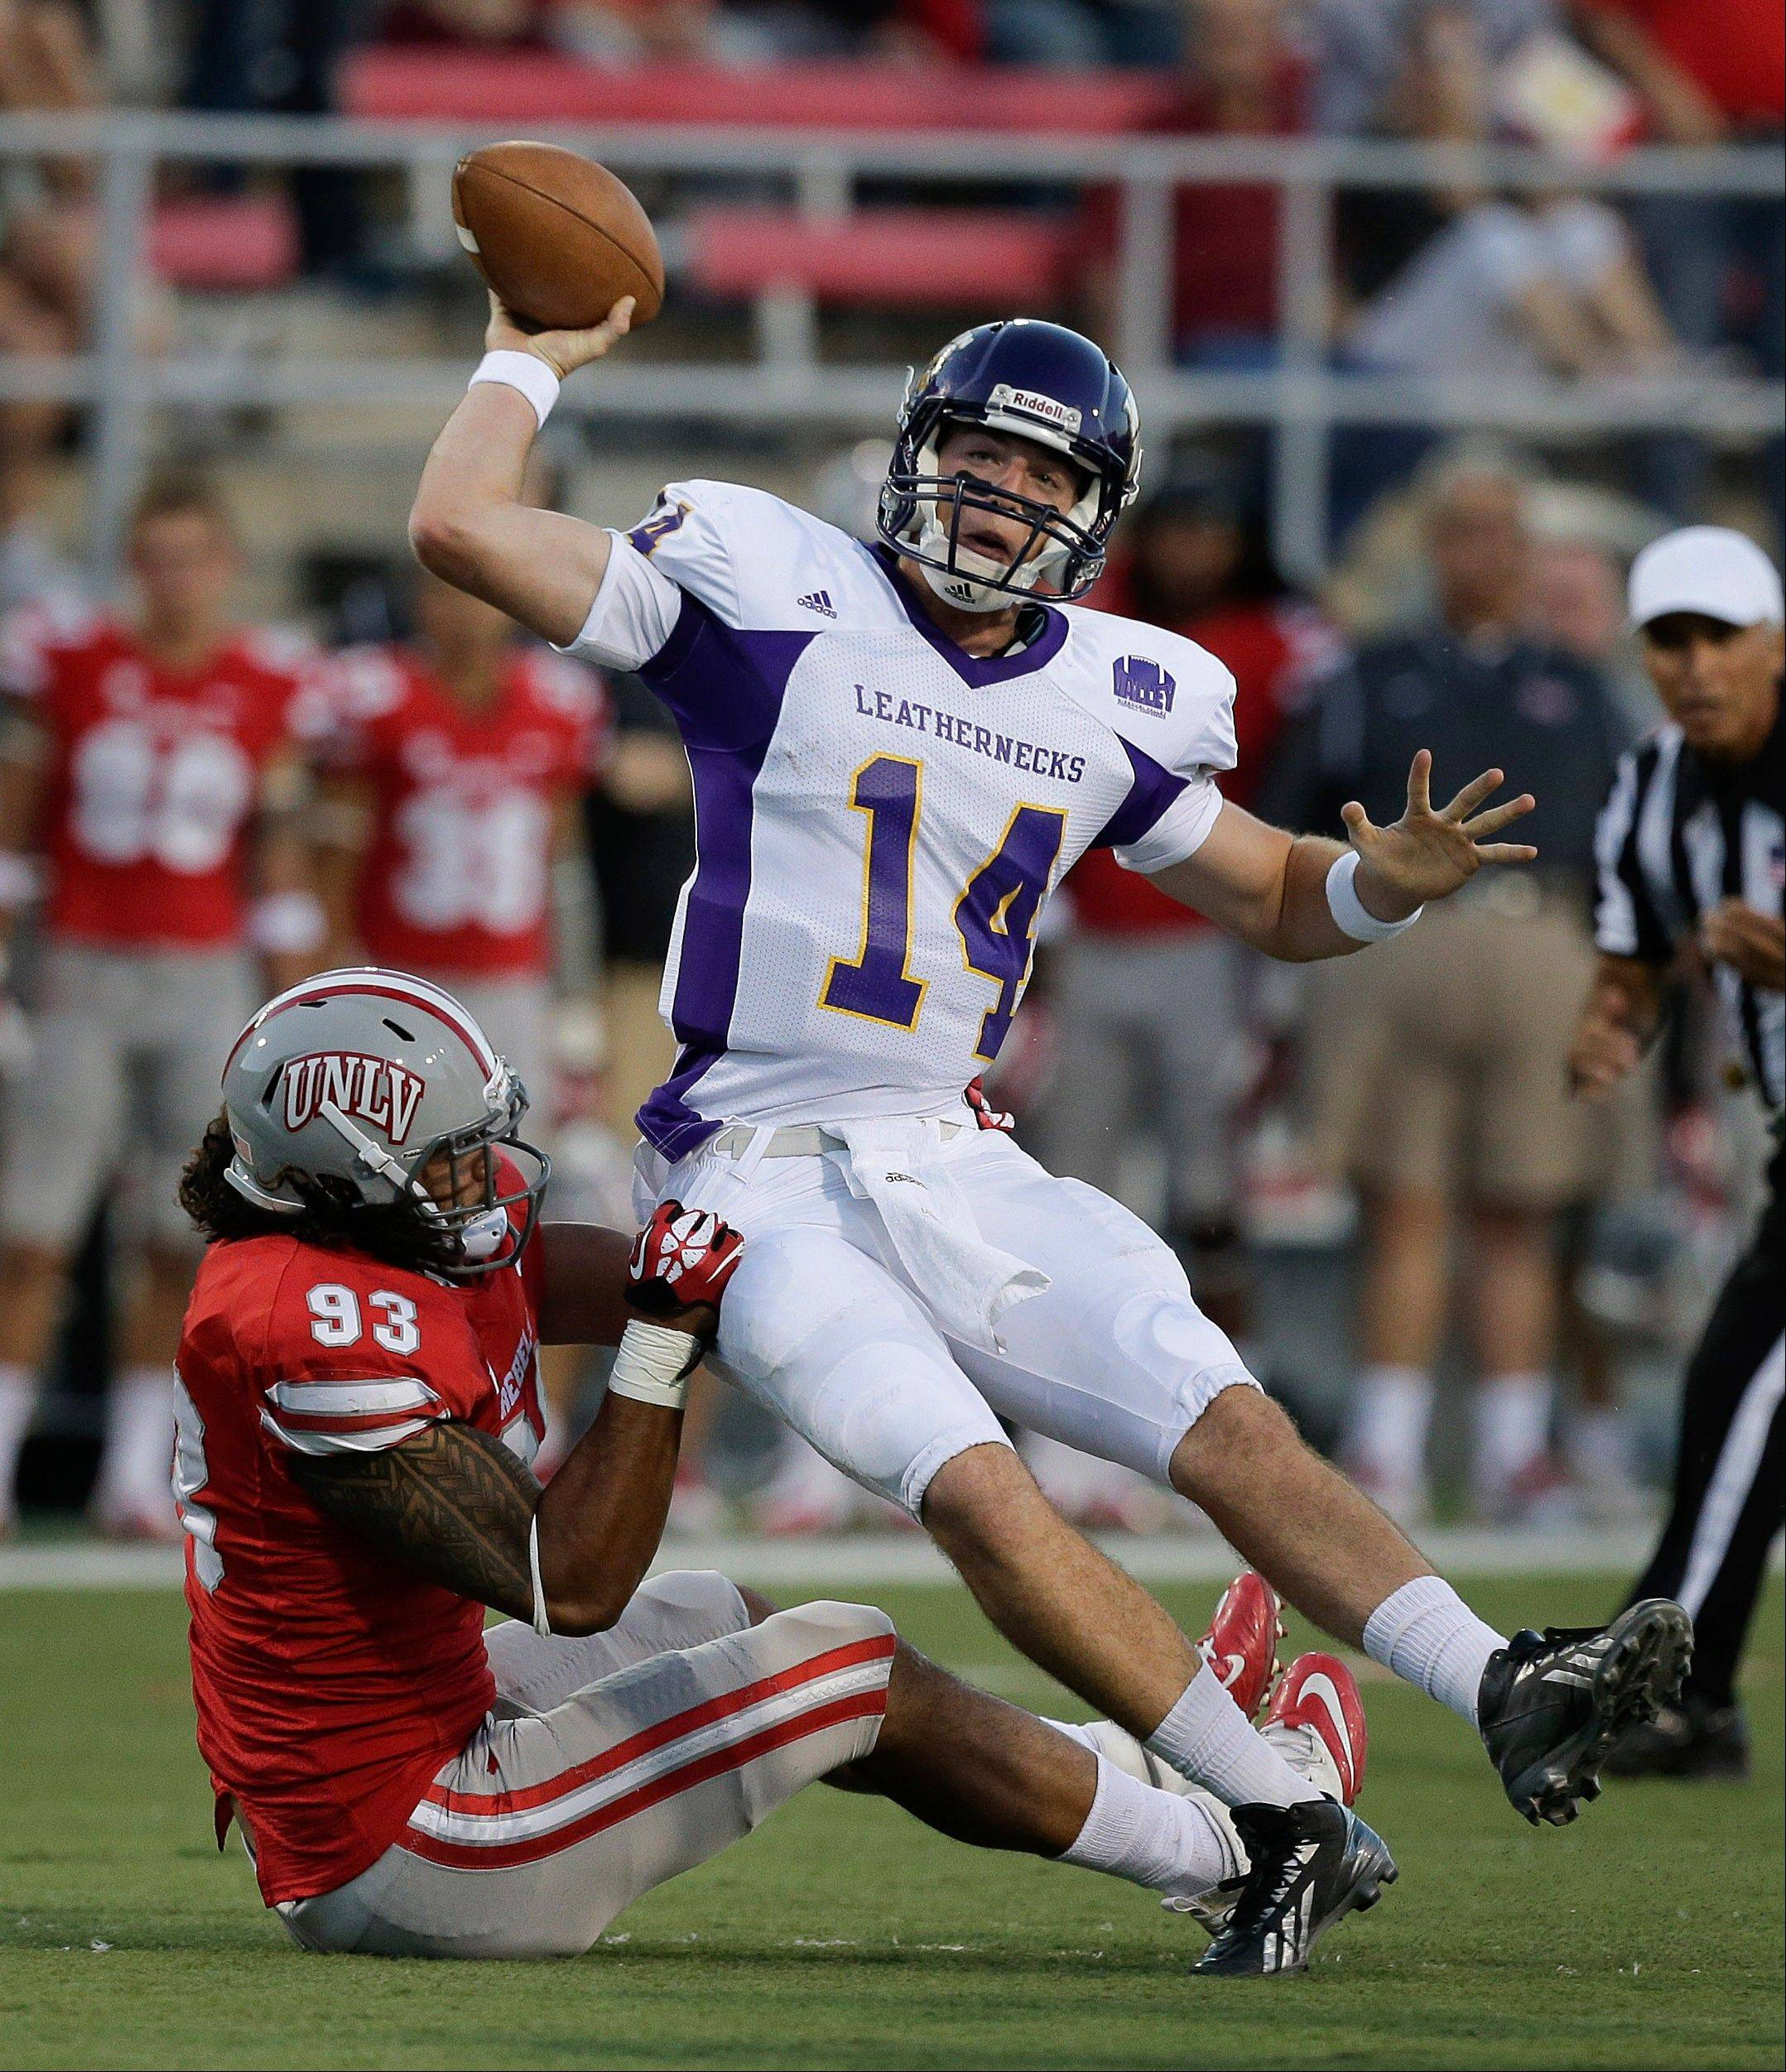 UNLV lineman Sonny Sanitoa sacks Western Illinois quarterback Trenton Norvell in the first quarter of Saturday night�s game in Las Vegas.